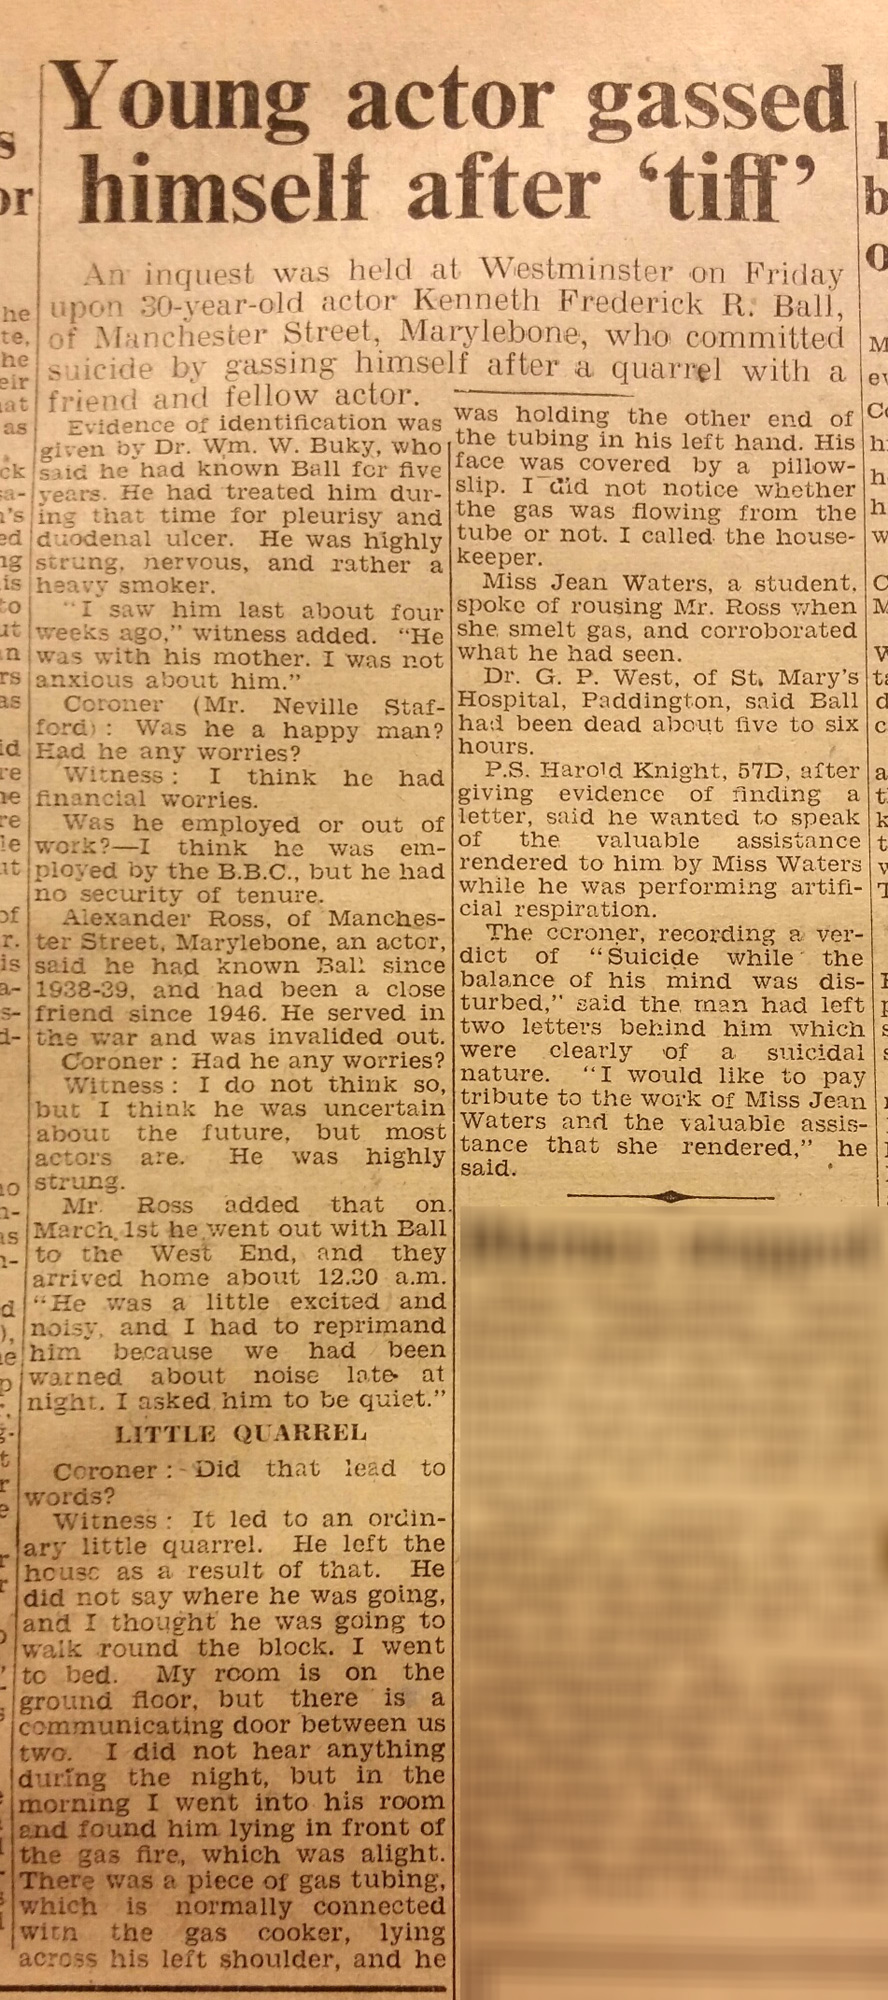 Newspaper report on the suicide of Terence Rattigan's former lover Kenneth Morgan